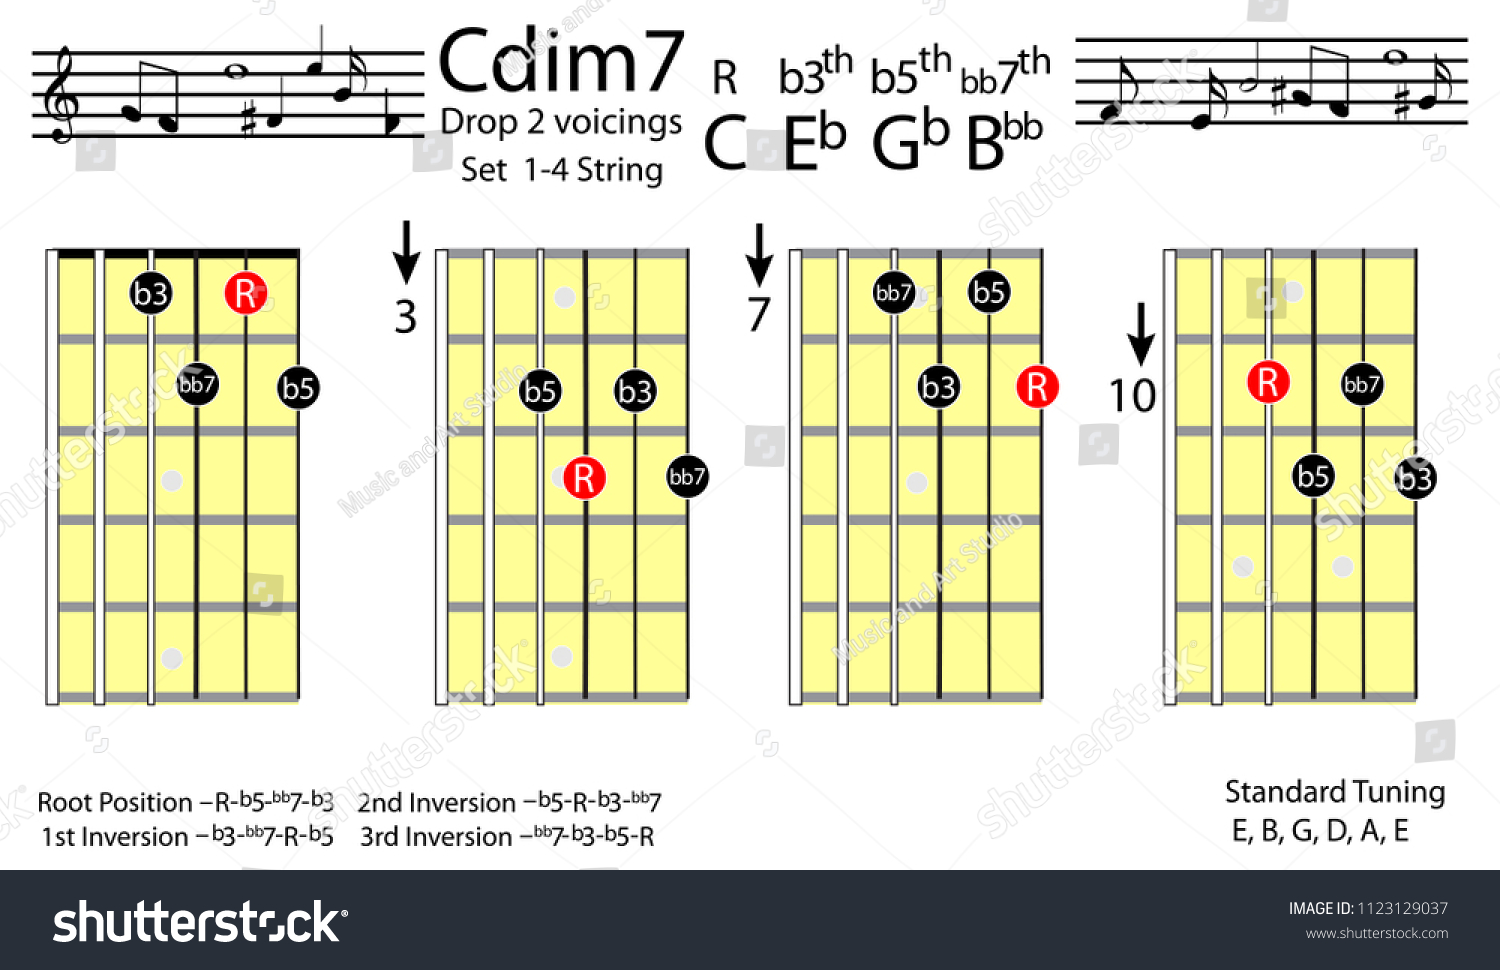 Guitar Chords C Diminish 7 Drop 2 Voicing Stock Vector Royalty Free